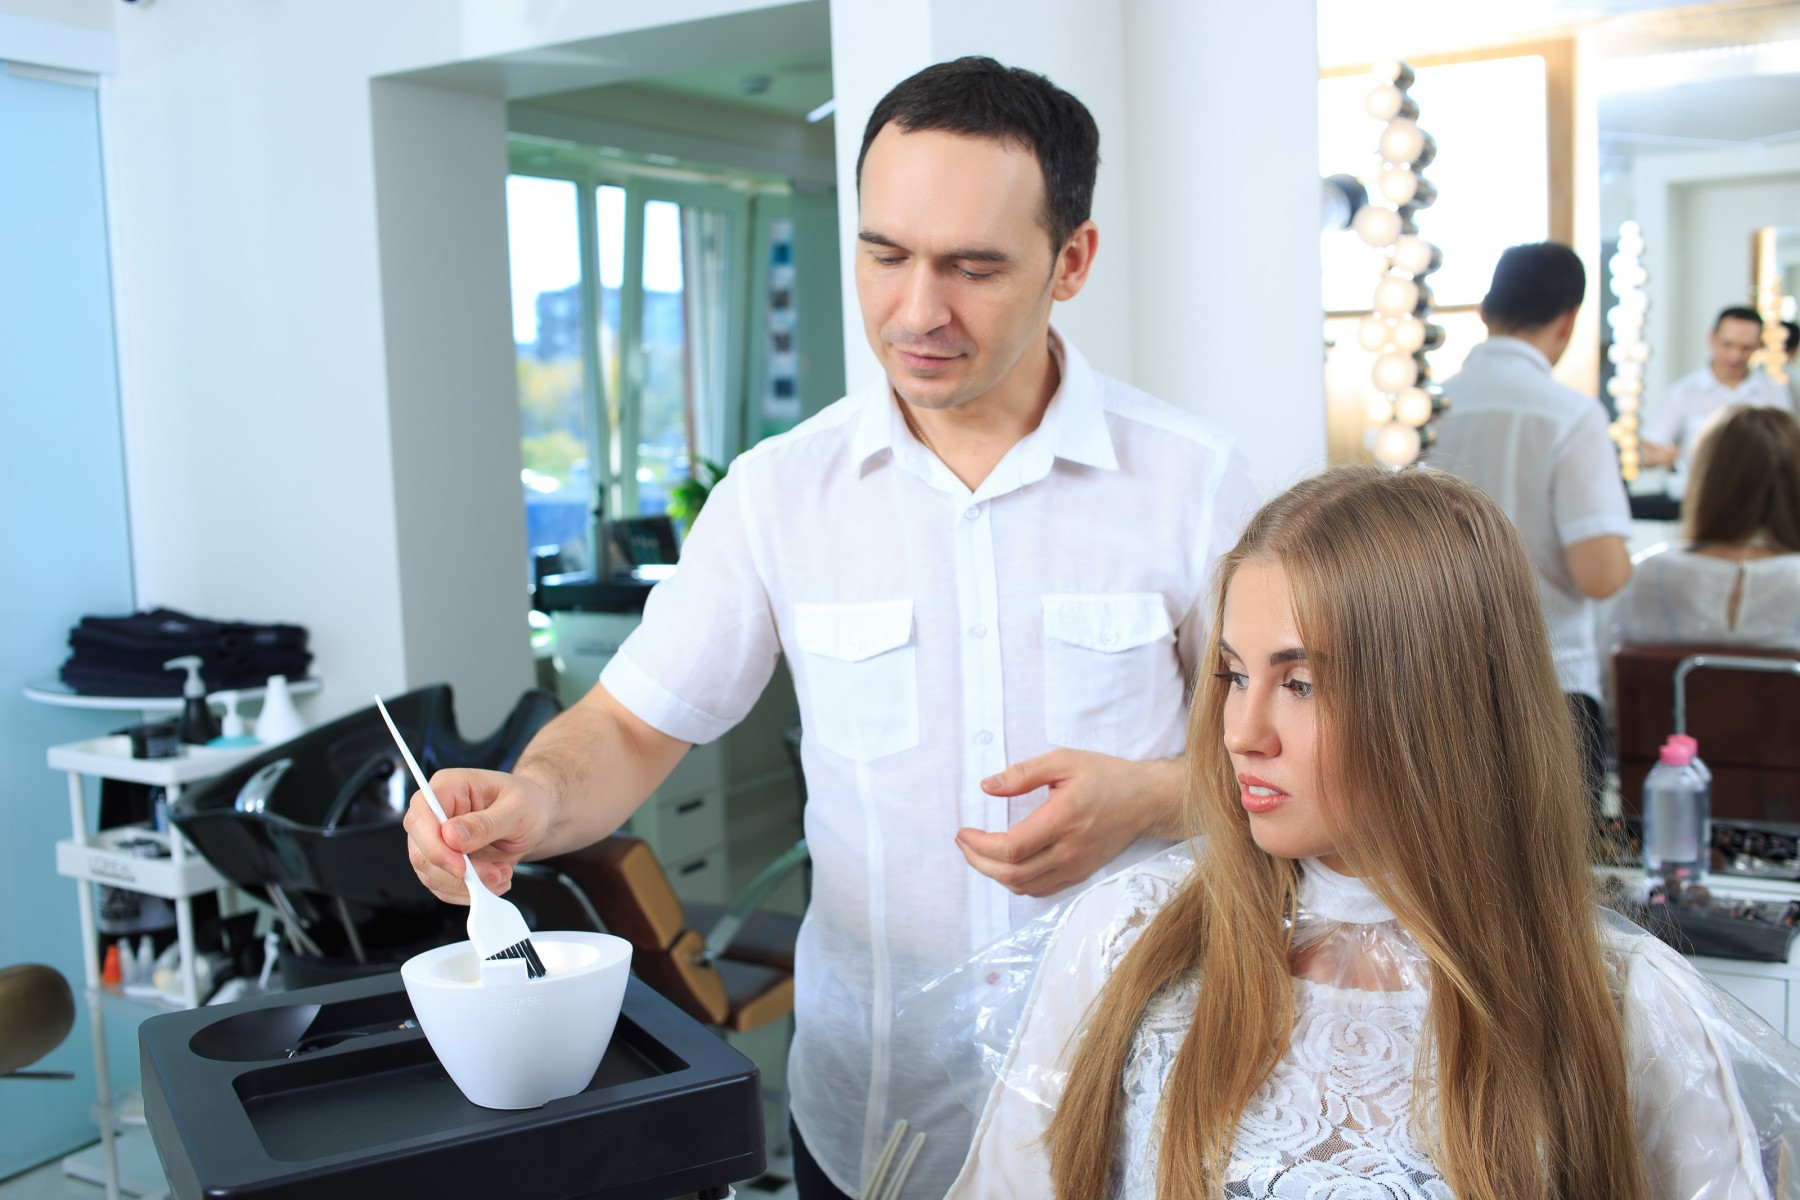 Owner / Operator Hair Salon For Sale, NSW in New South Wales, Australia